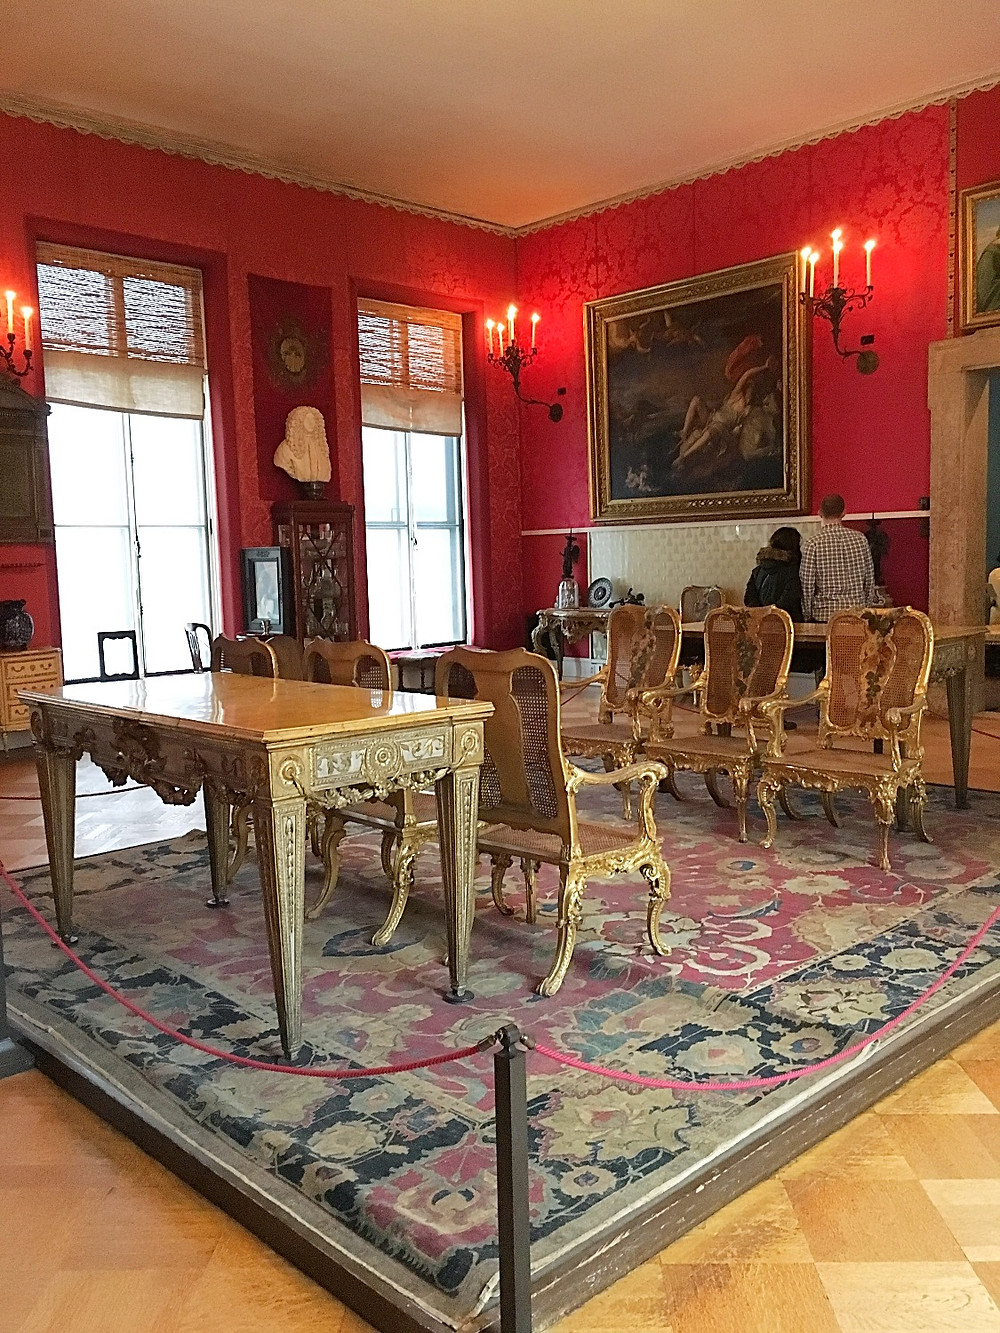 The Titian Room in the Gardner Museum. Photo by Diana Dinverno.